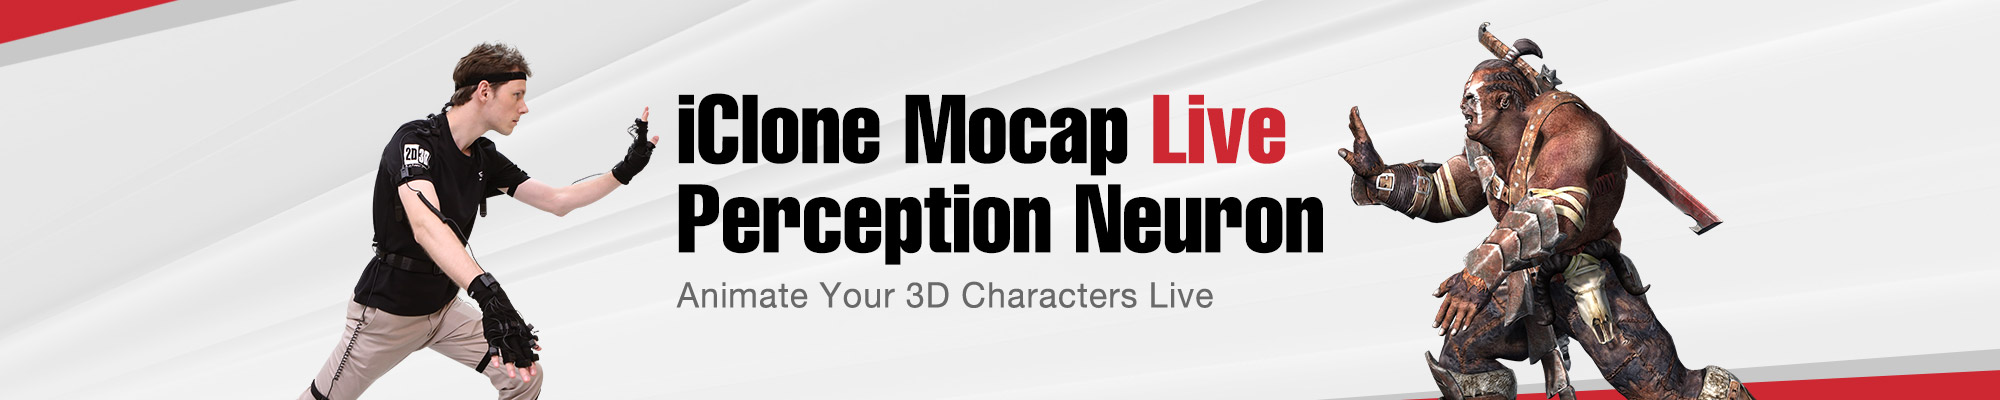 iClone Mocap Live for Perception Neuron